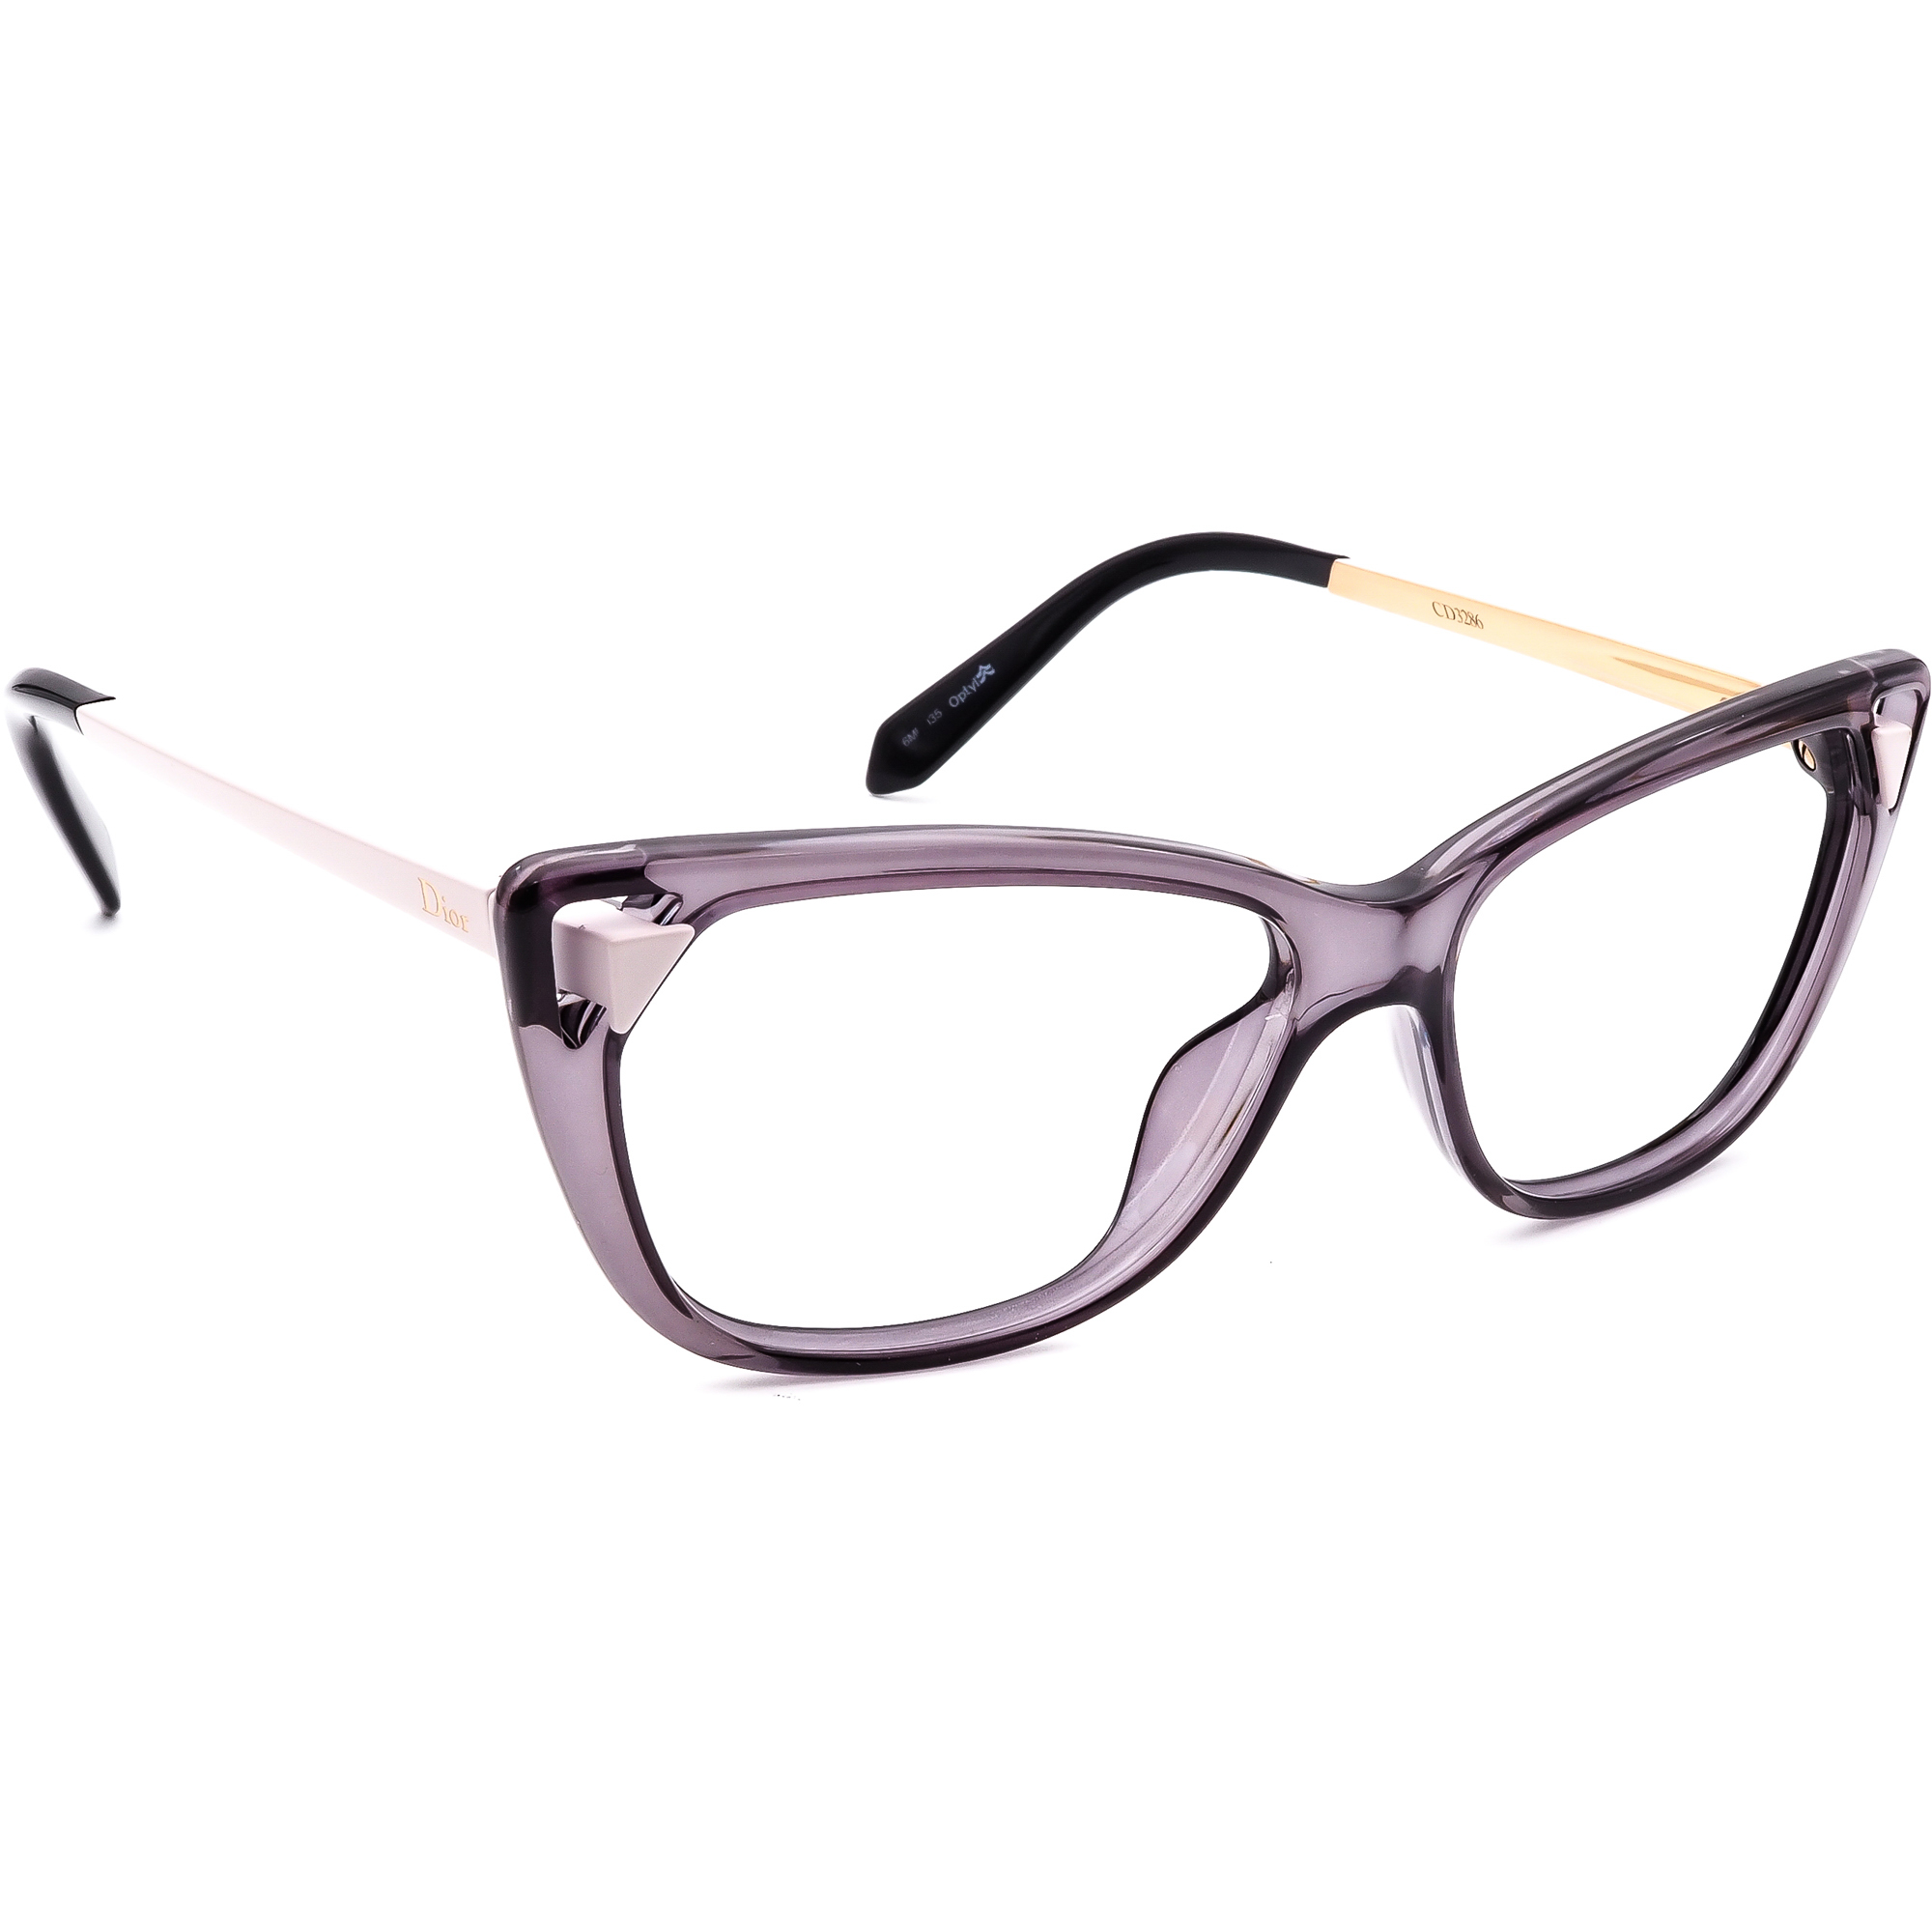 Christian Dior CD 3286 Eyeglasses